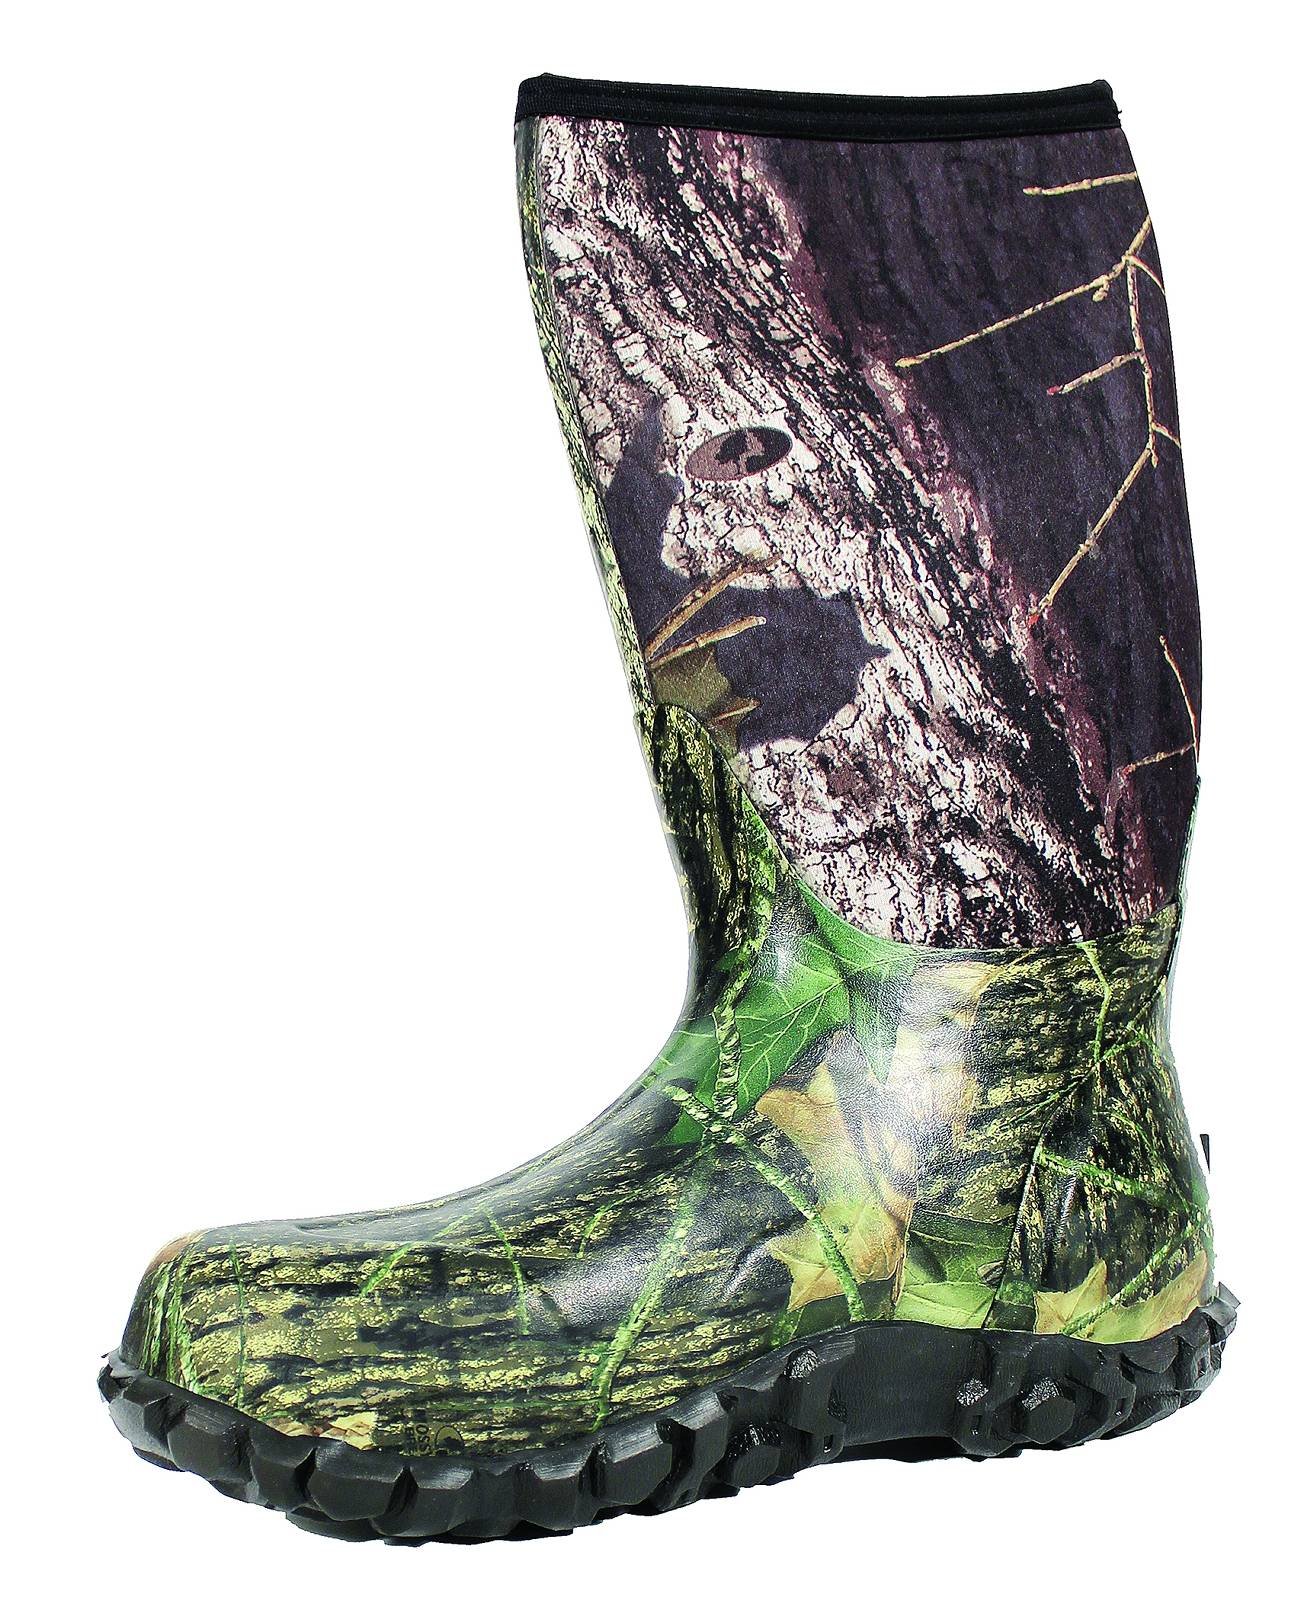 Bogs Classic High Boots - Men, Camo